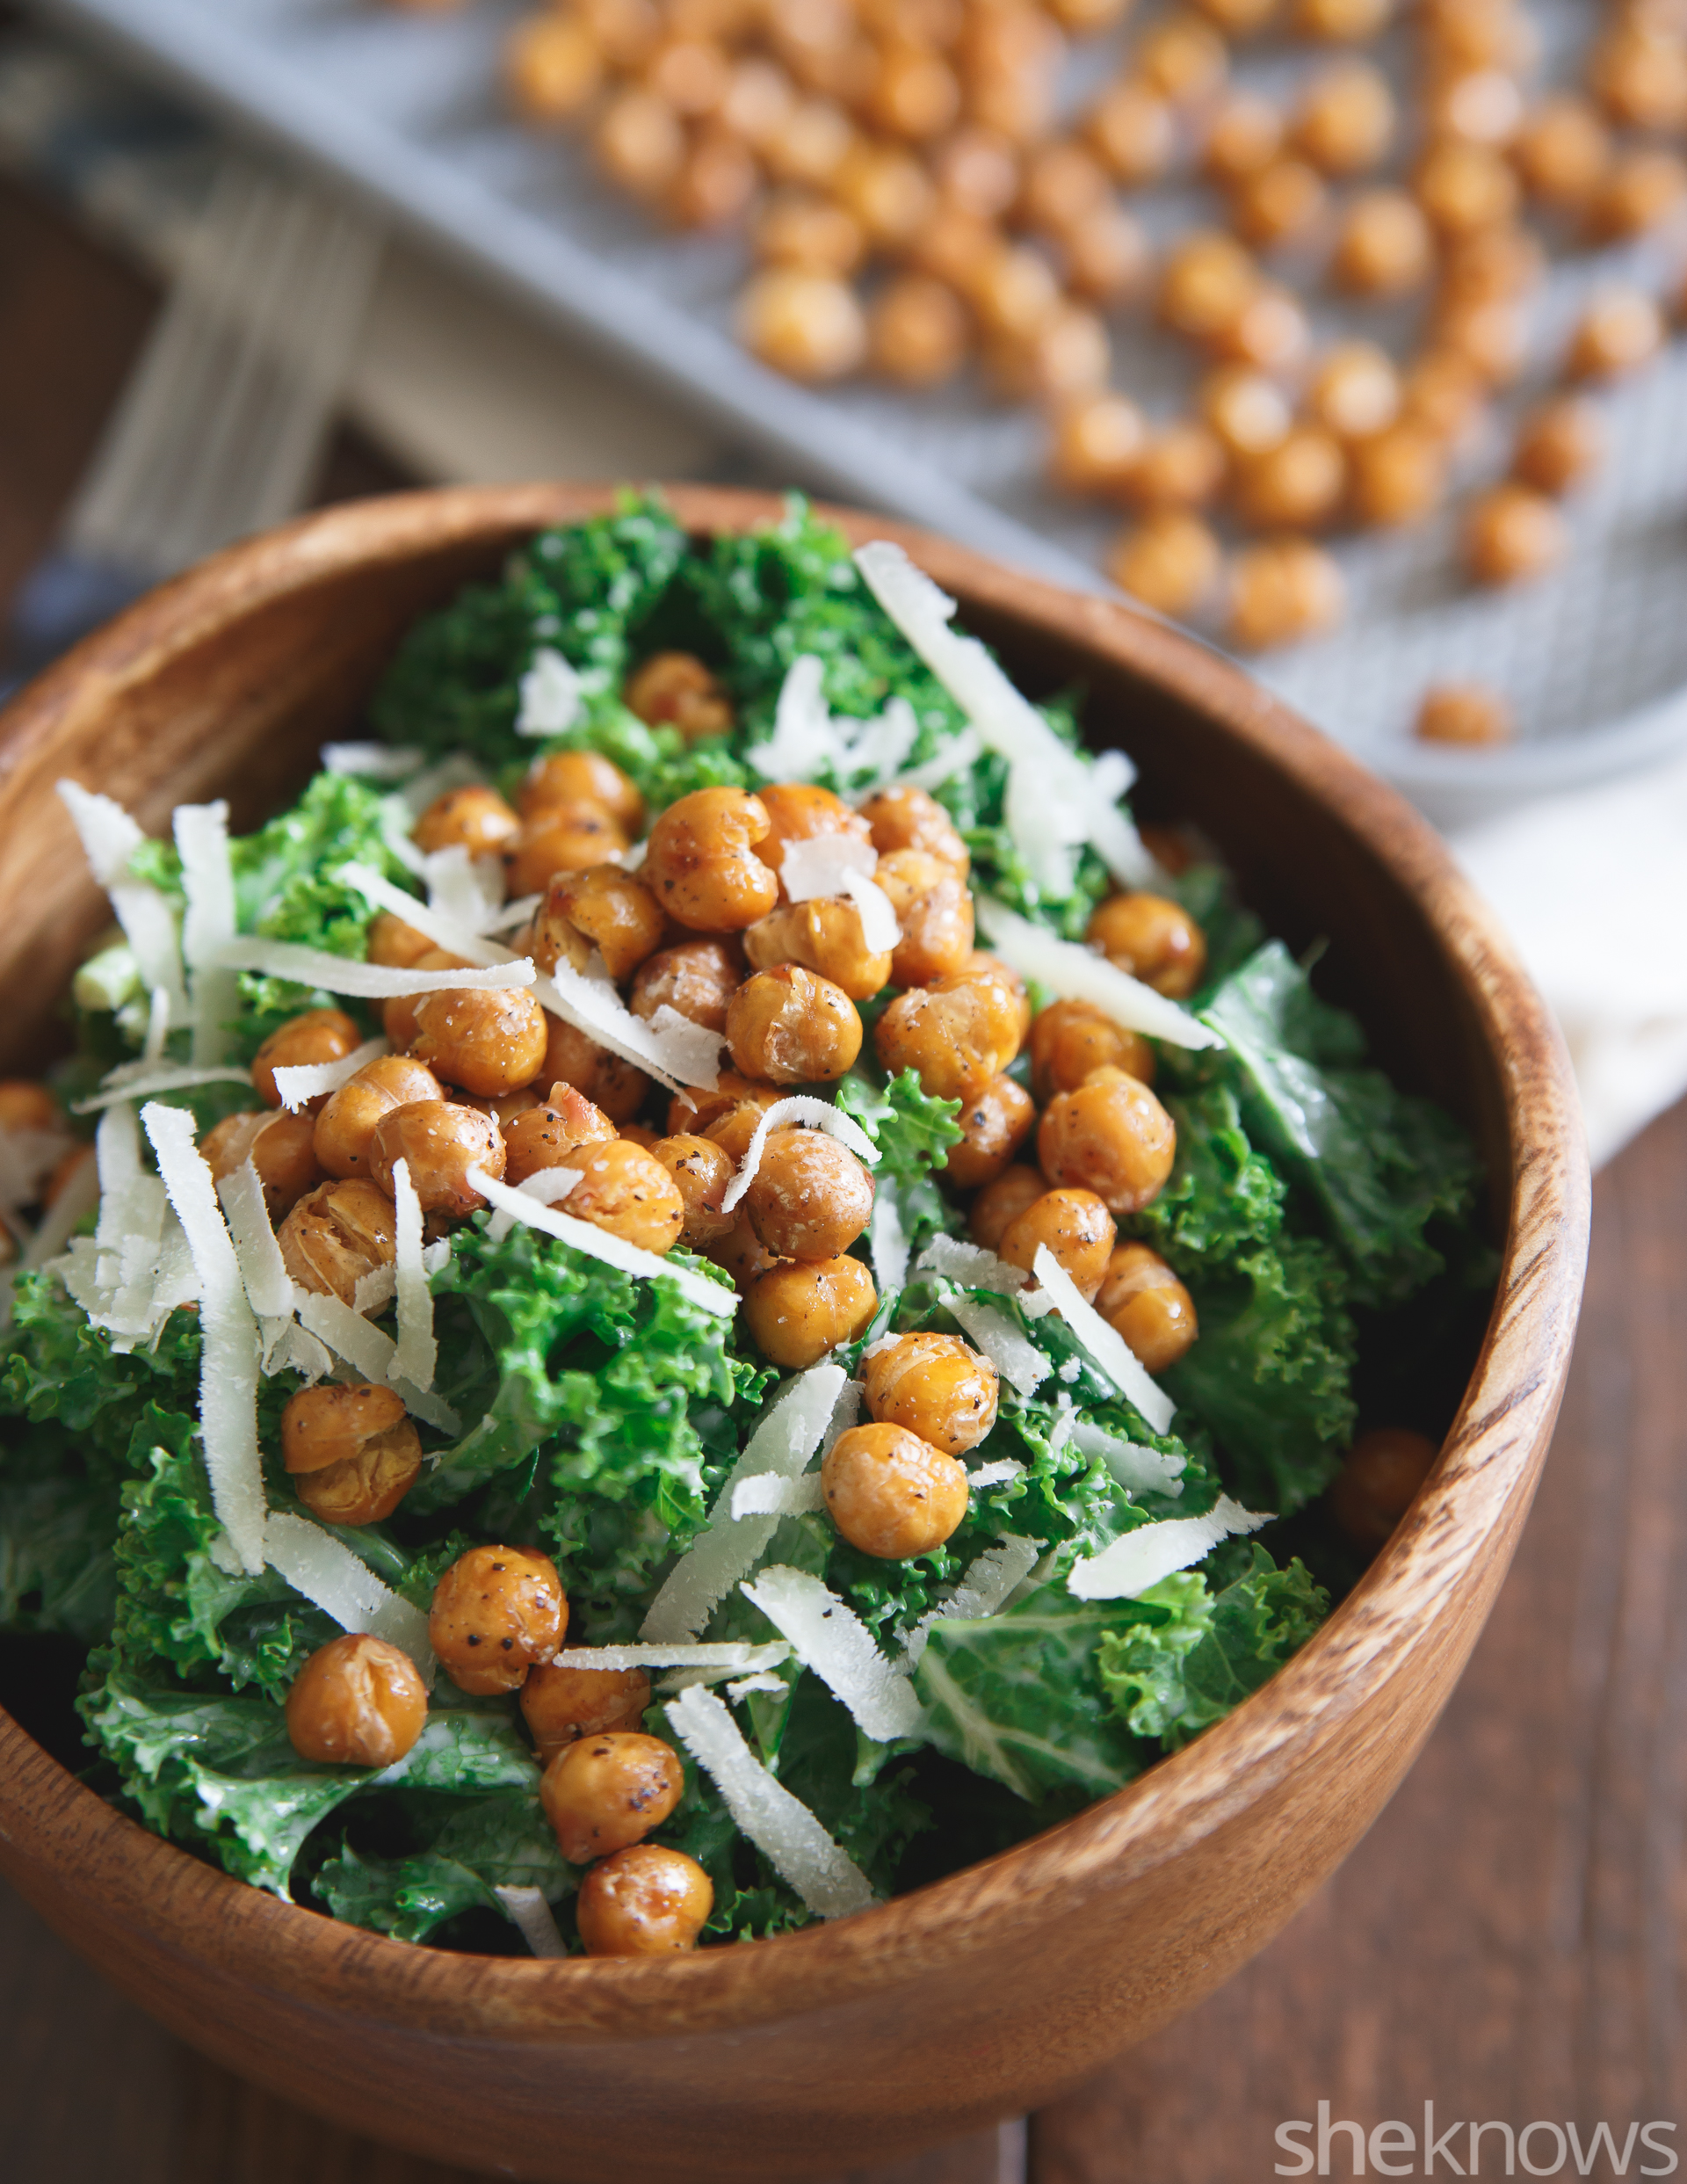 Salt and vinegar roasted chickpea caesar salad